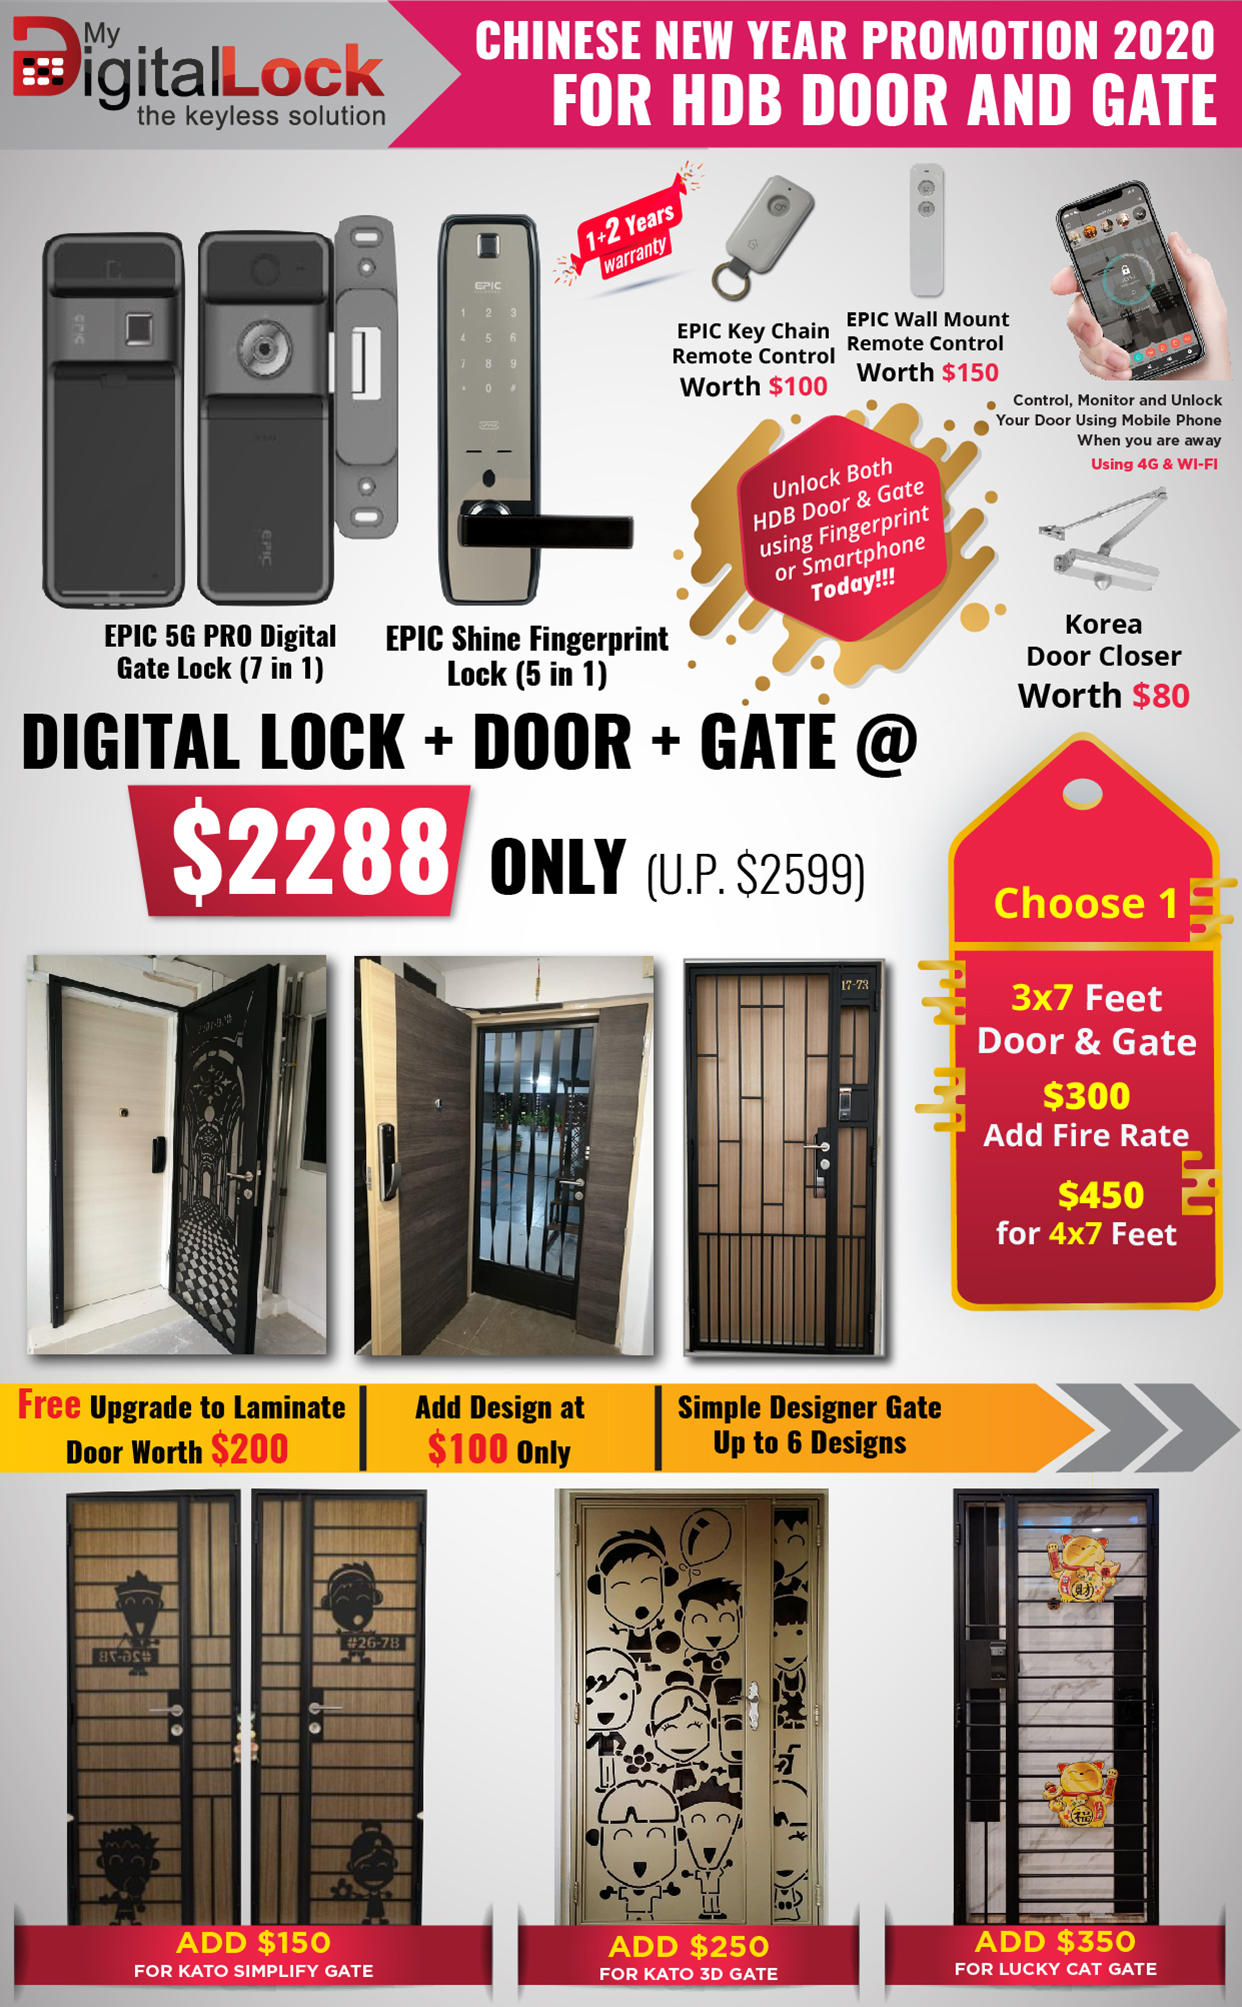 Buy EPIC 5G Pro Digital Gate Lock @ My Digital Lock. Call 9067 7990